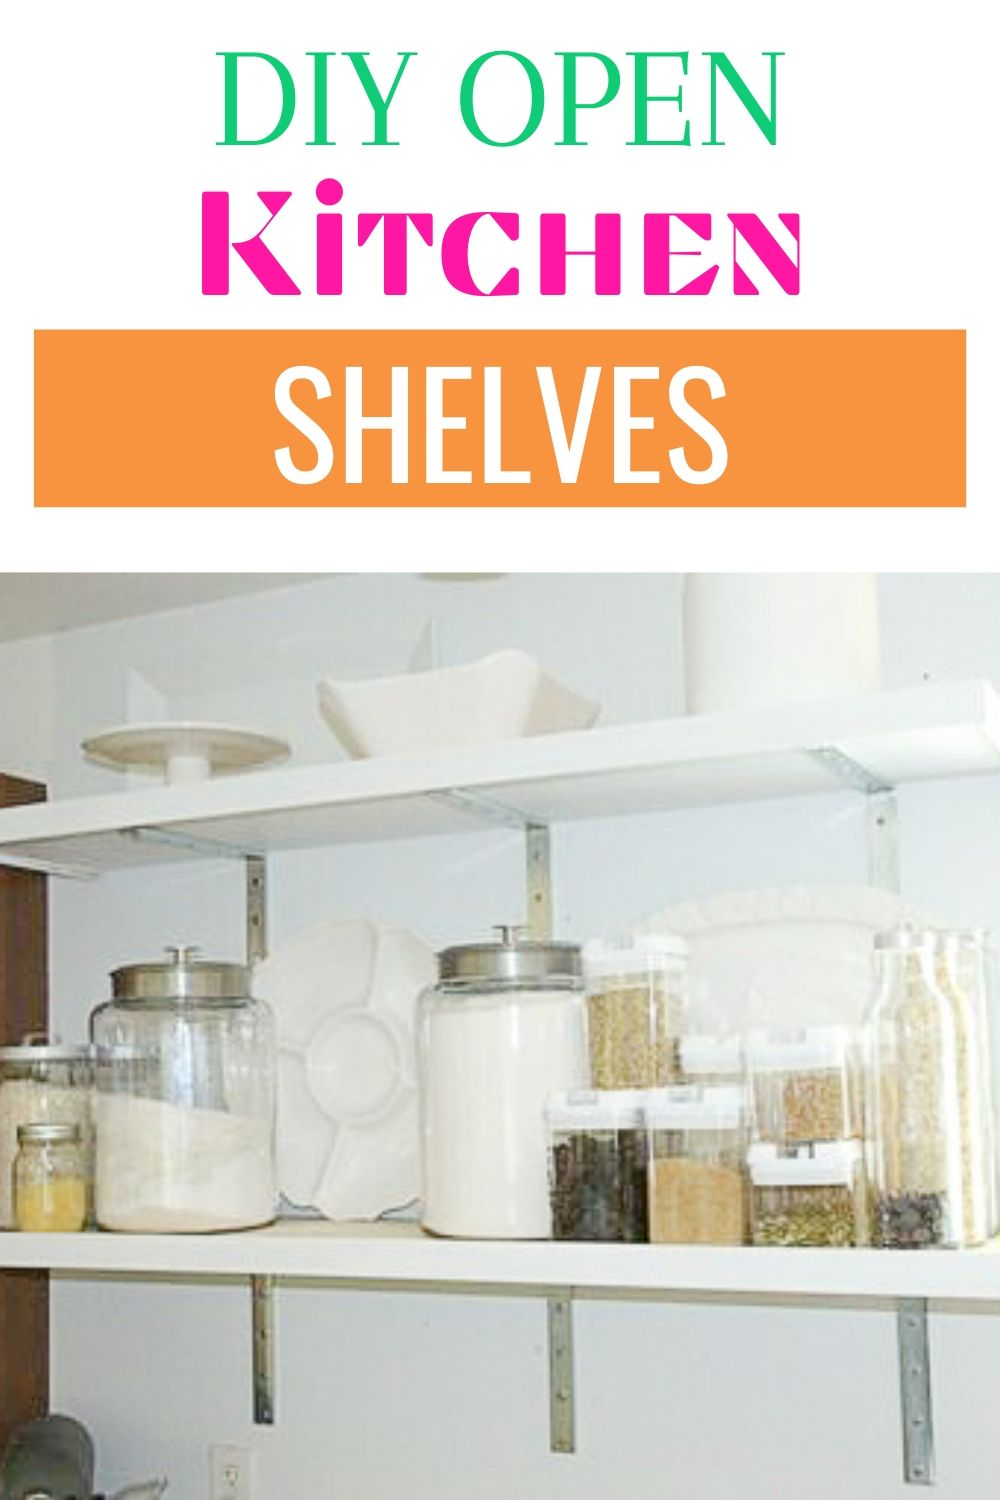 Build these simple DIY open kitchen shelves with just a few supplies and a little bit of time. They're simple to install and add storage to your kitchen #diy #organize #weekendproject #woodworking #openkitchenshelves via @homebyjenn